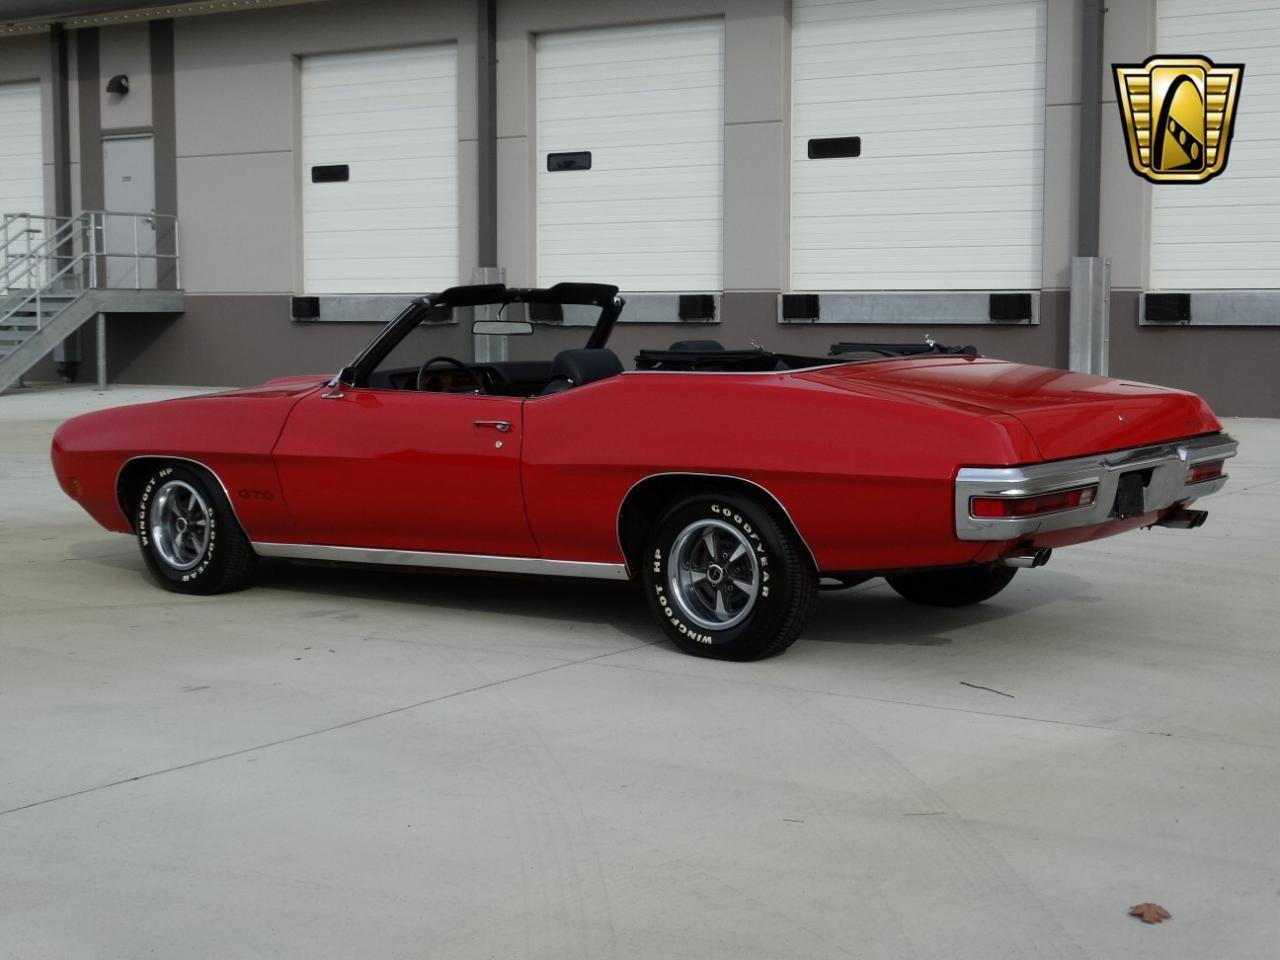 Large Picture of 1970 GTO located in Alpharetta Georgia - $71,000.00 Offered by Gateway Classic Cars - Atlanta - KF5T